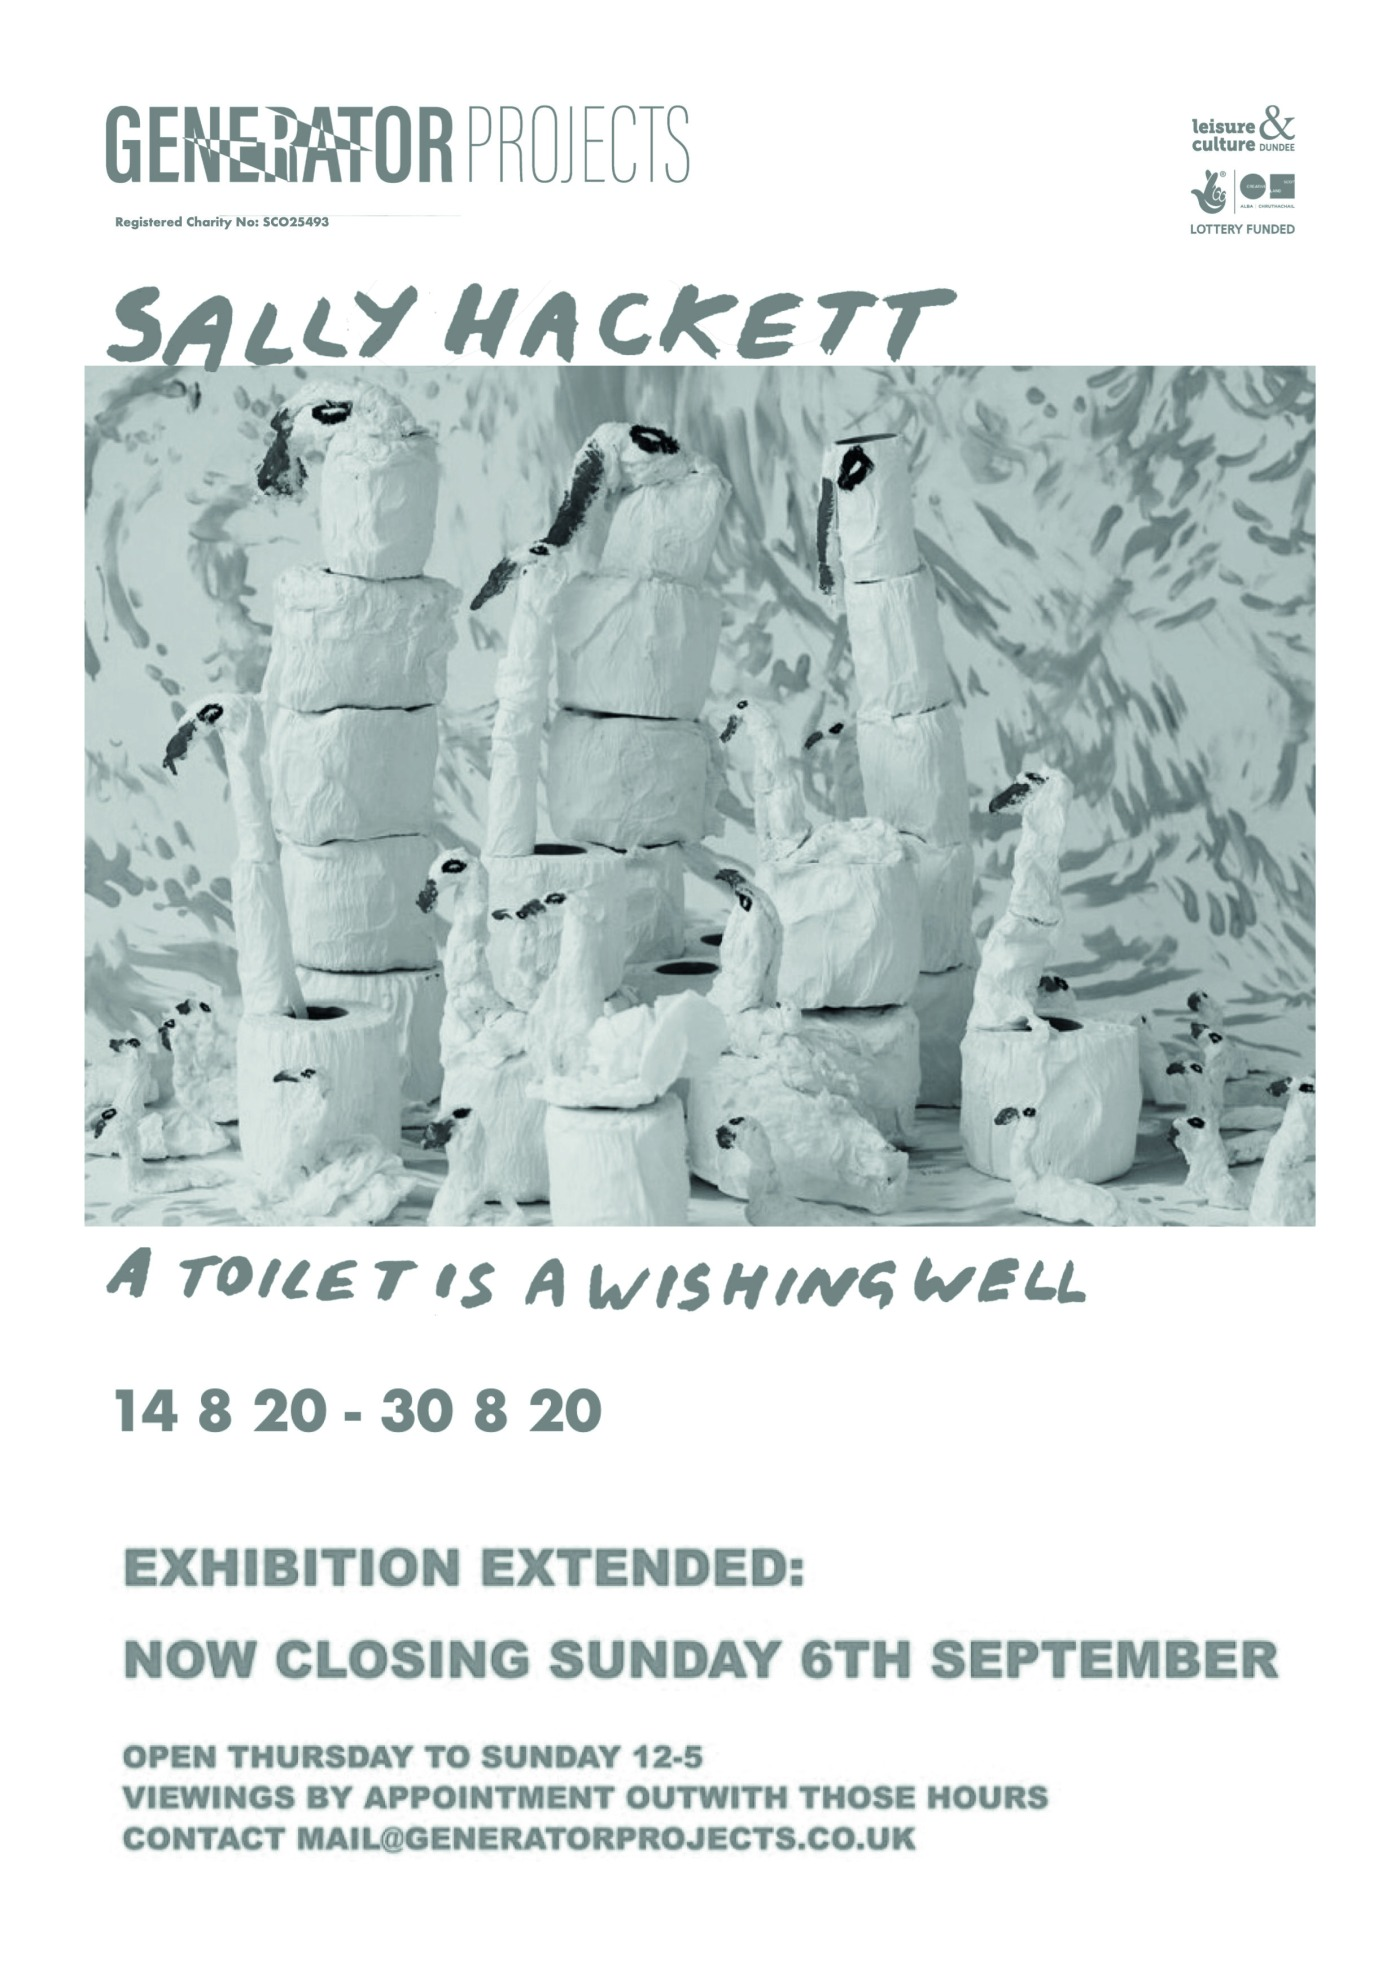 """An advert for Sally Hackett's exhibition, """"A toilet is a wishing well."""" and a picture of toilet rolls in a winter wonderland scene. It says that the exhibition closes on sunday 6th september and is at Generator Projects."""